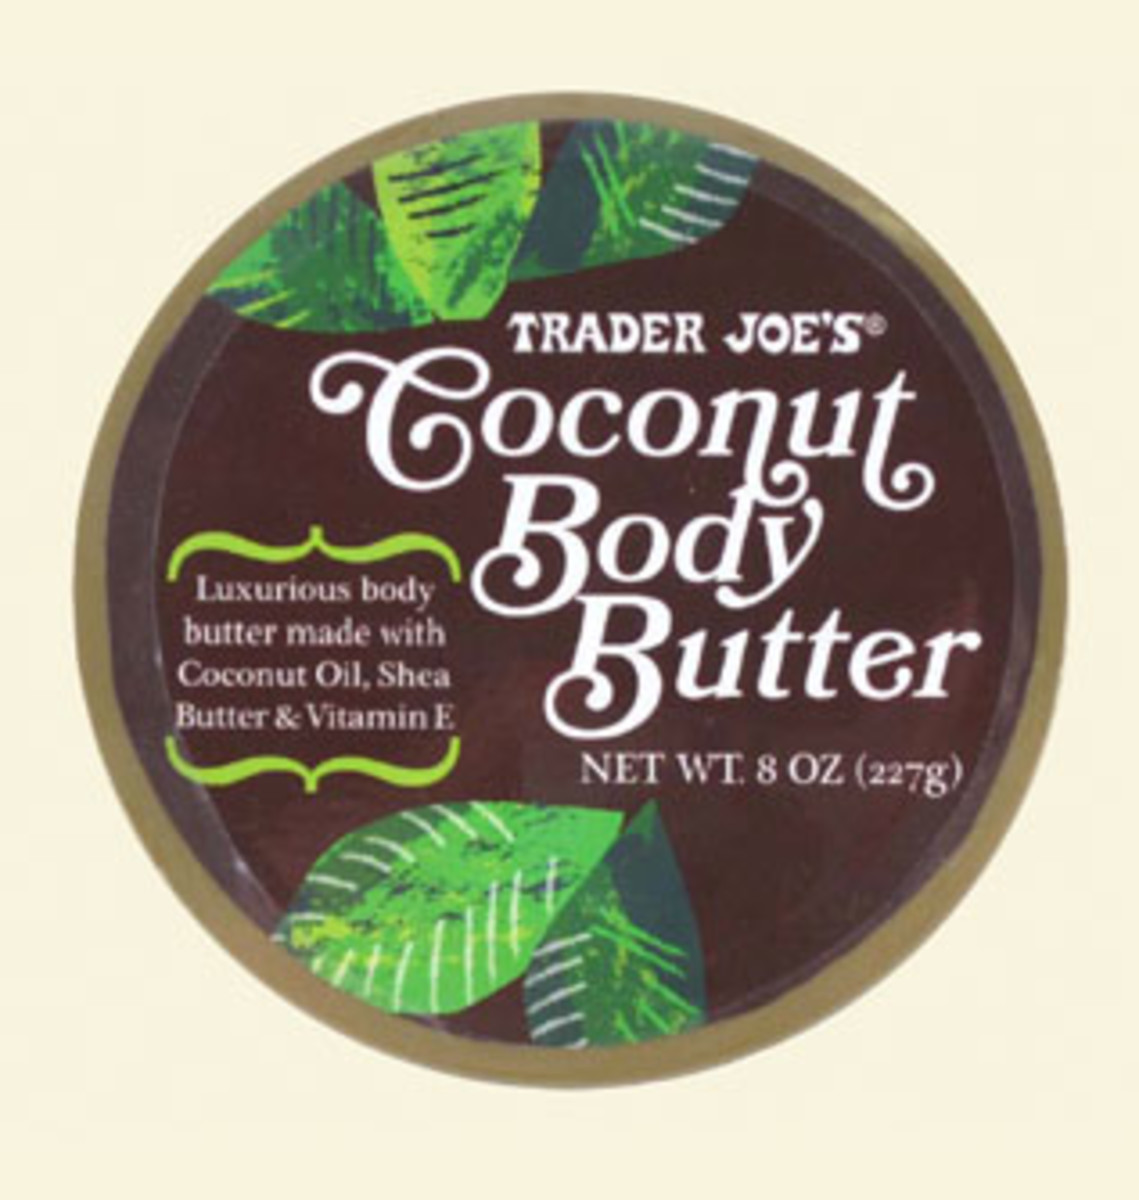 must-buy-gift-gift-list-trader-joes-body-butter